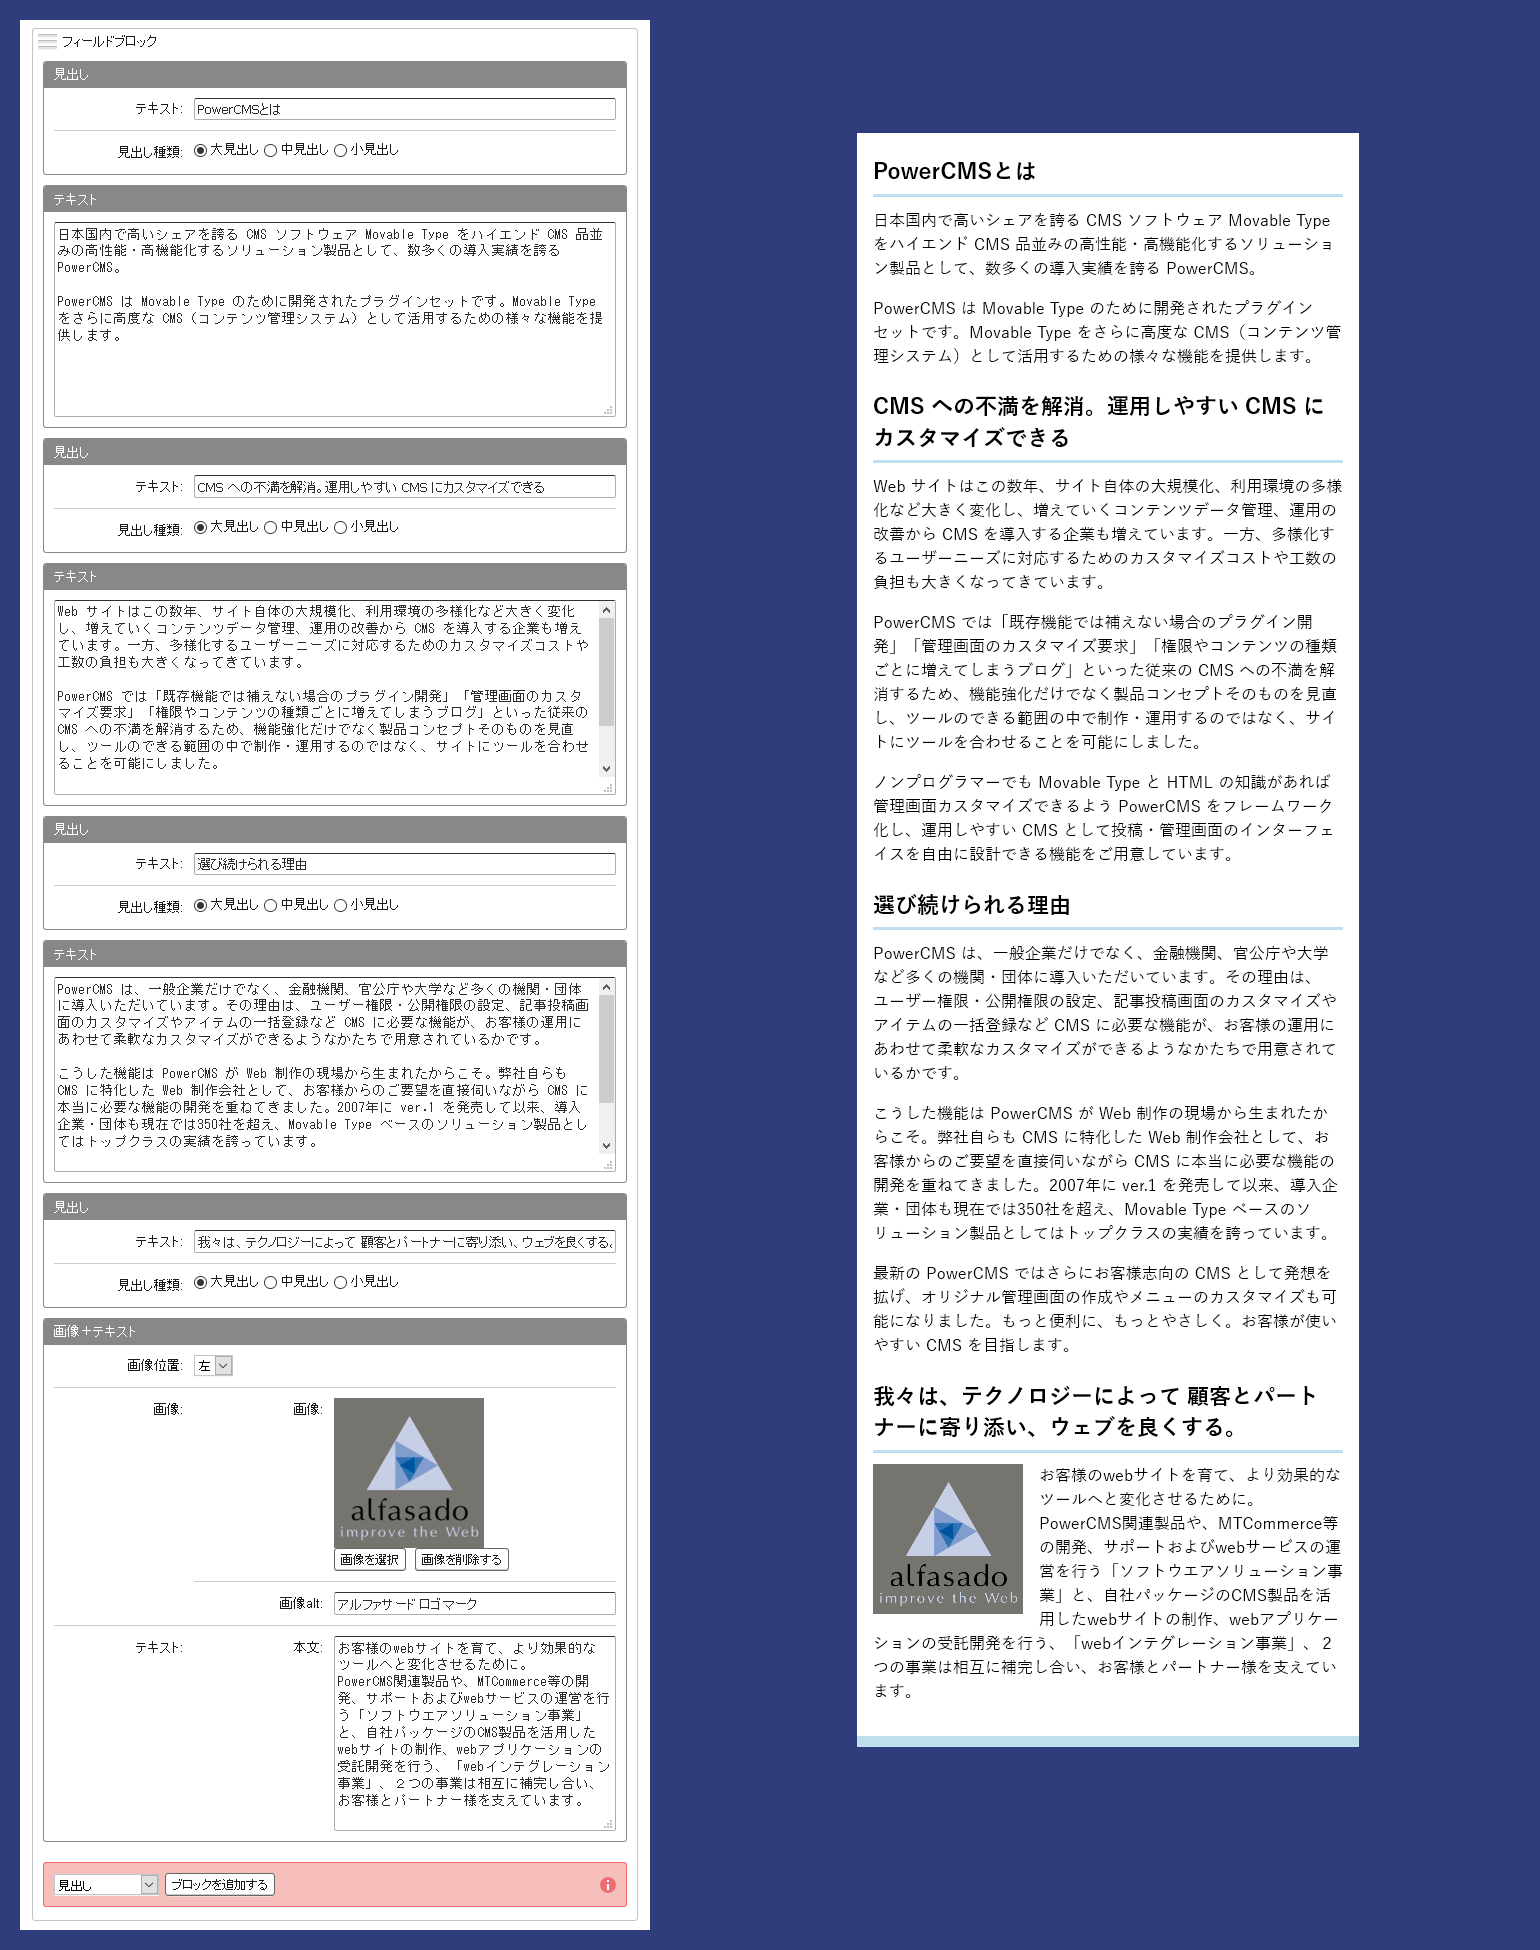 https://www.powercms.jp/blog/files/fjmt/fb_04.png